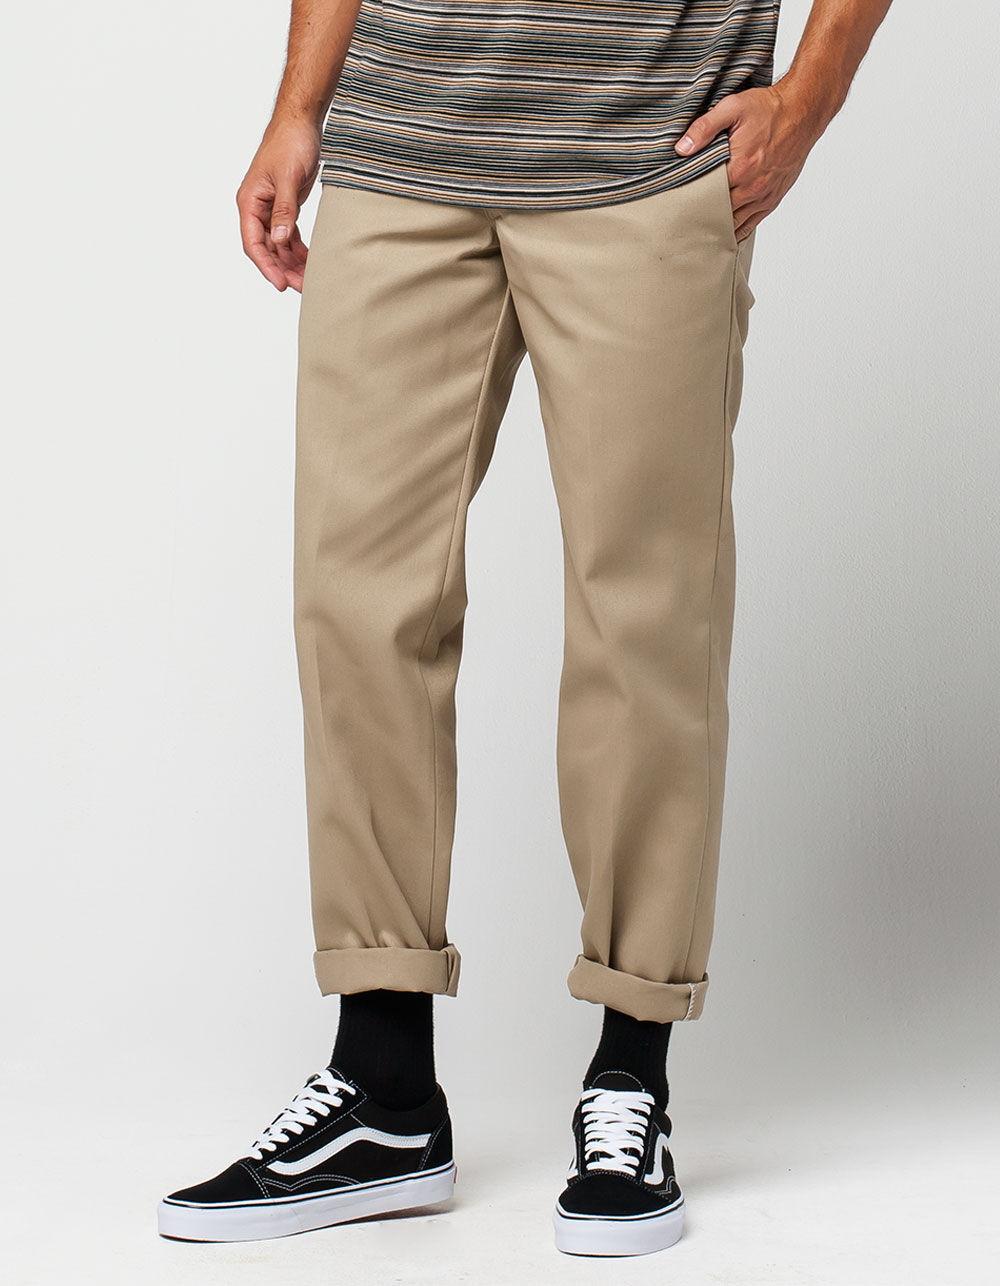 DICKIES 873 Mens Work Pants